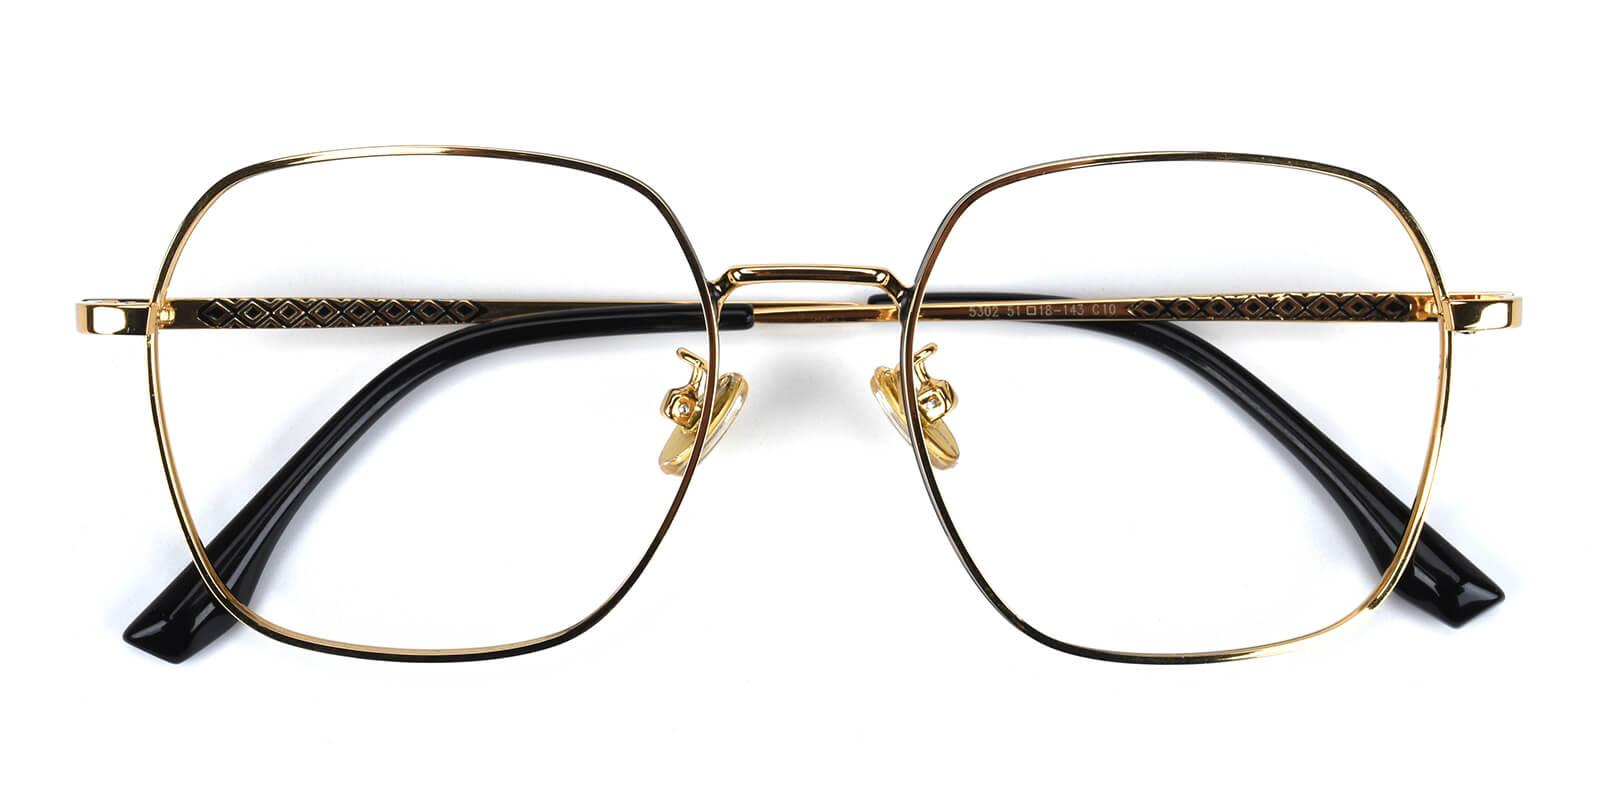 Vincoy-Gold-Square-Metal-Eyeglasses-detail